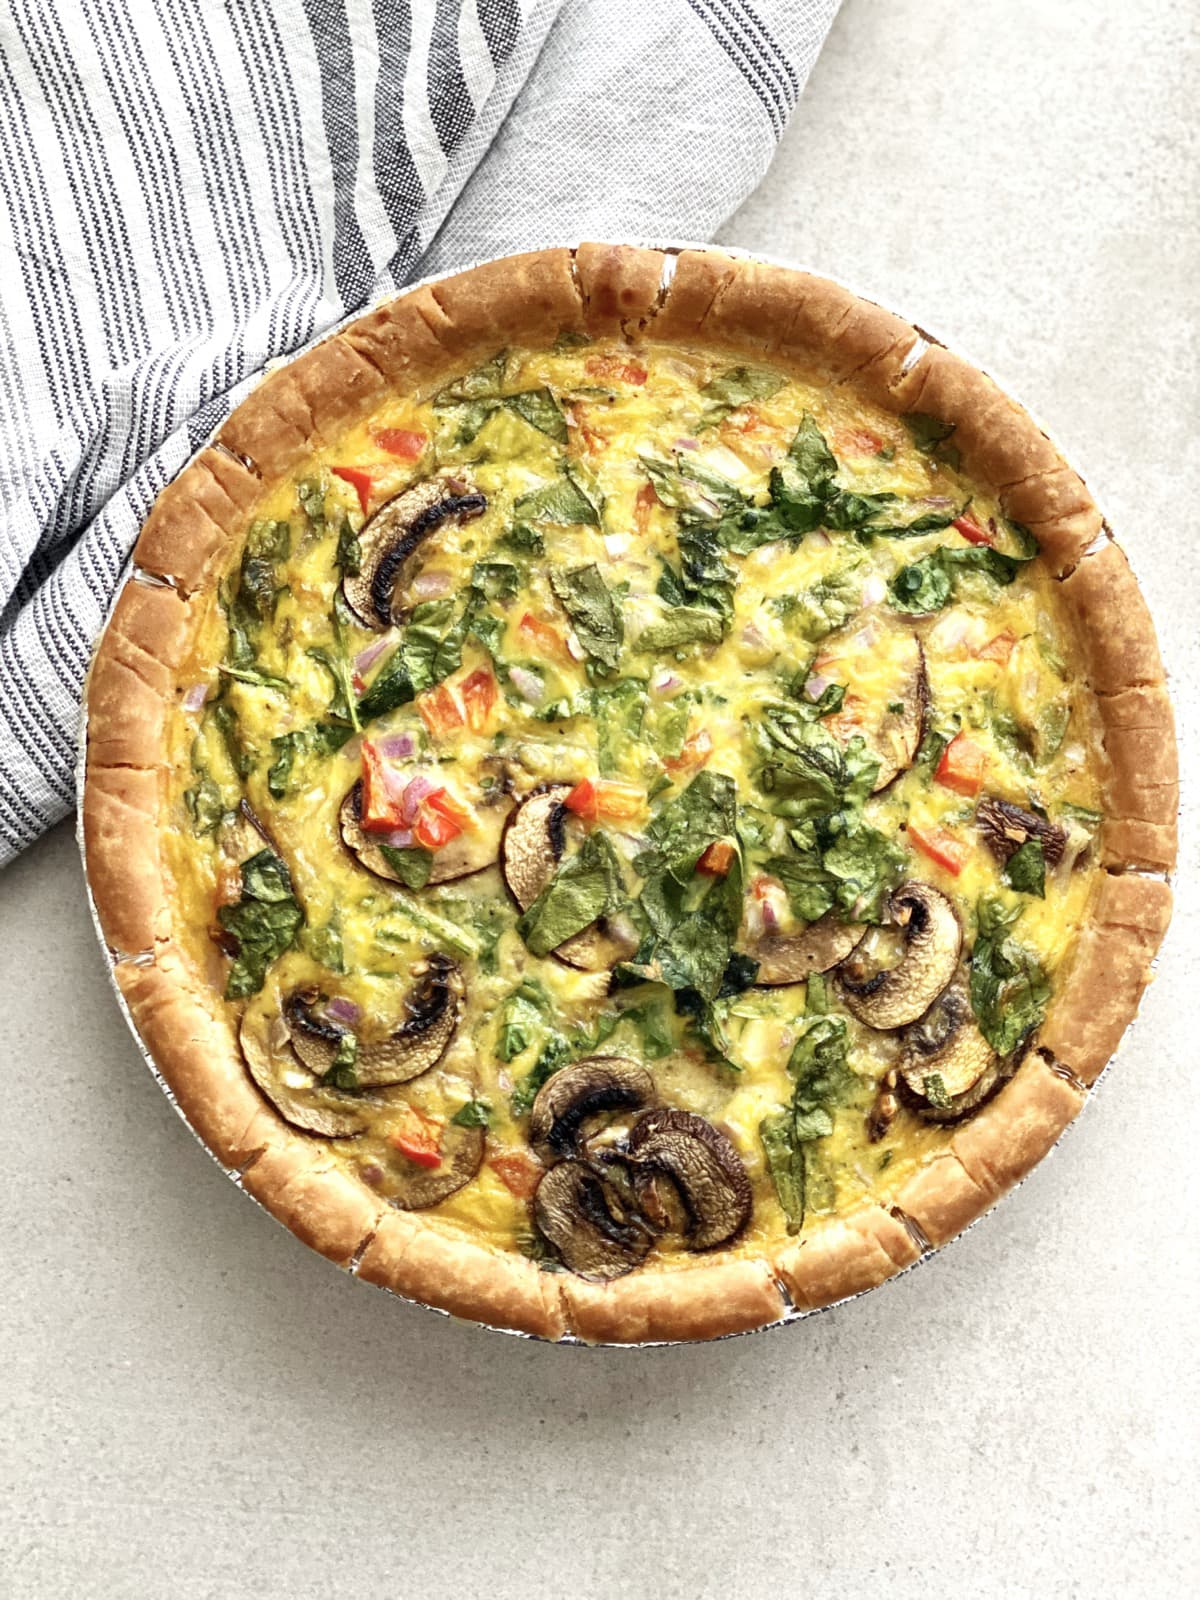 An entire plant-based quiche